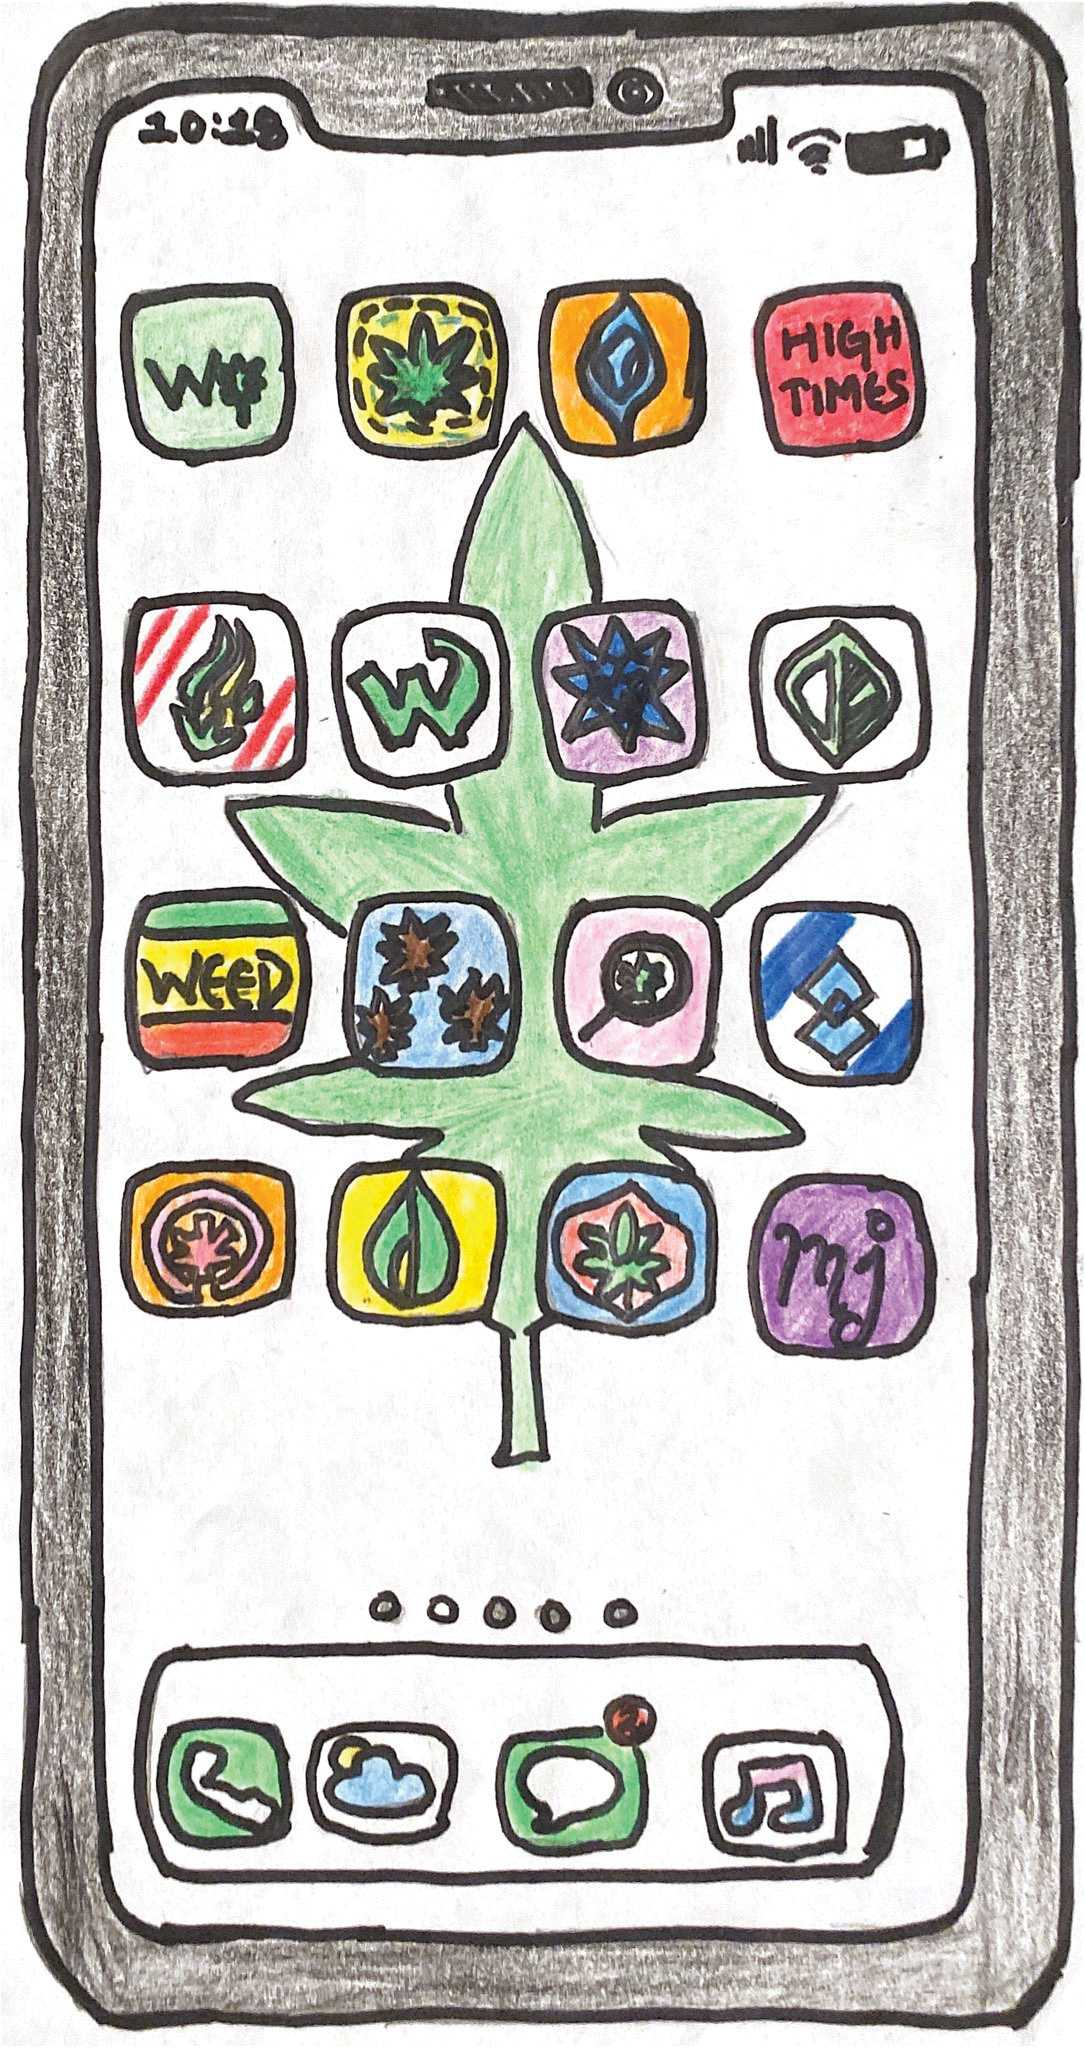 Illustration by Rinchin Lama   | Various cannabis community cell phone apps provide social media, cannabis locators and databases where users can find information on products, strains and health.